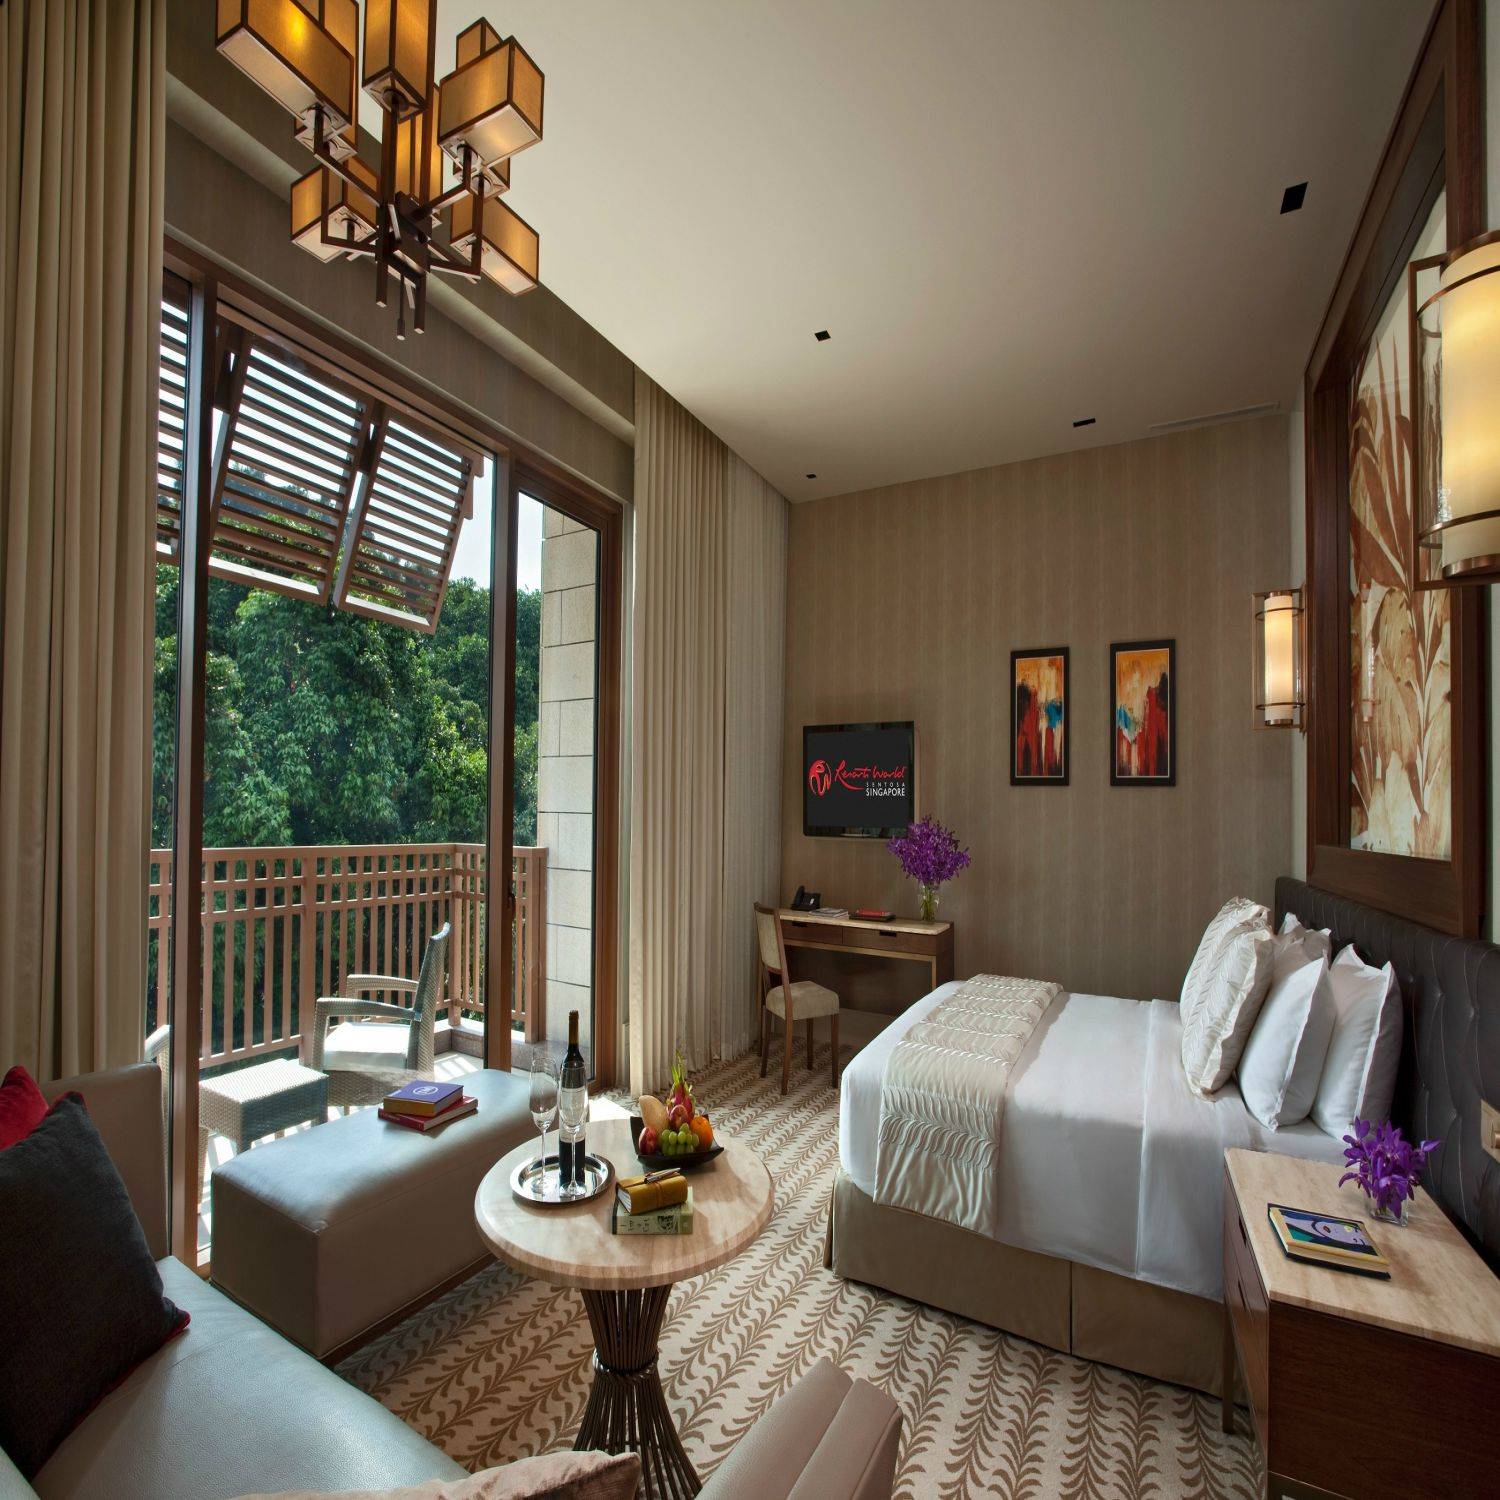 Cheap Hotel Accommodation Deals Singapore From 318 For